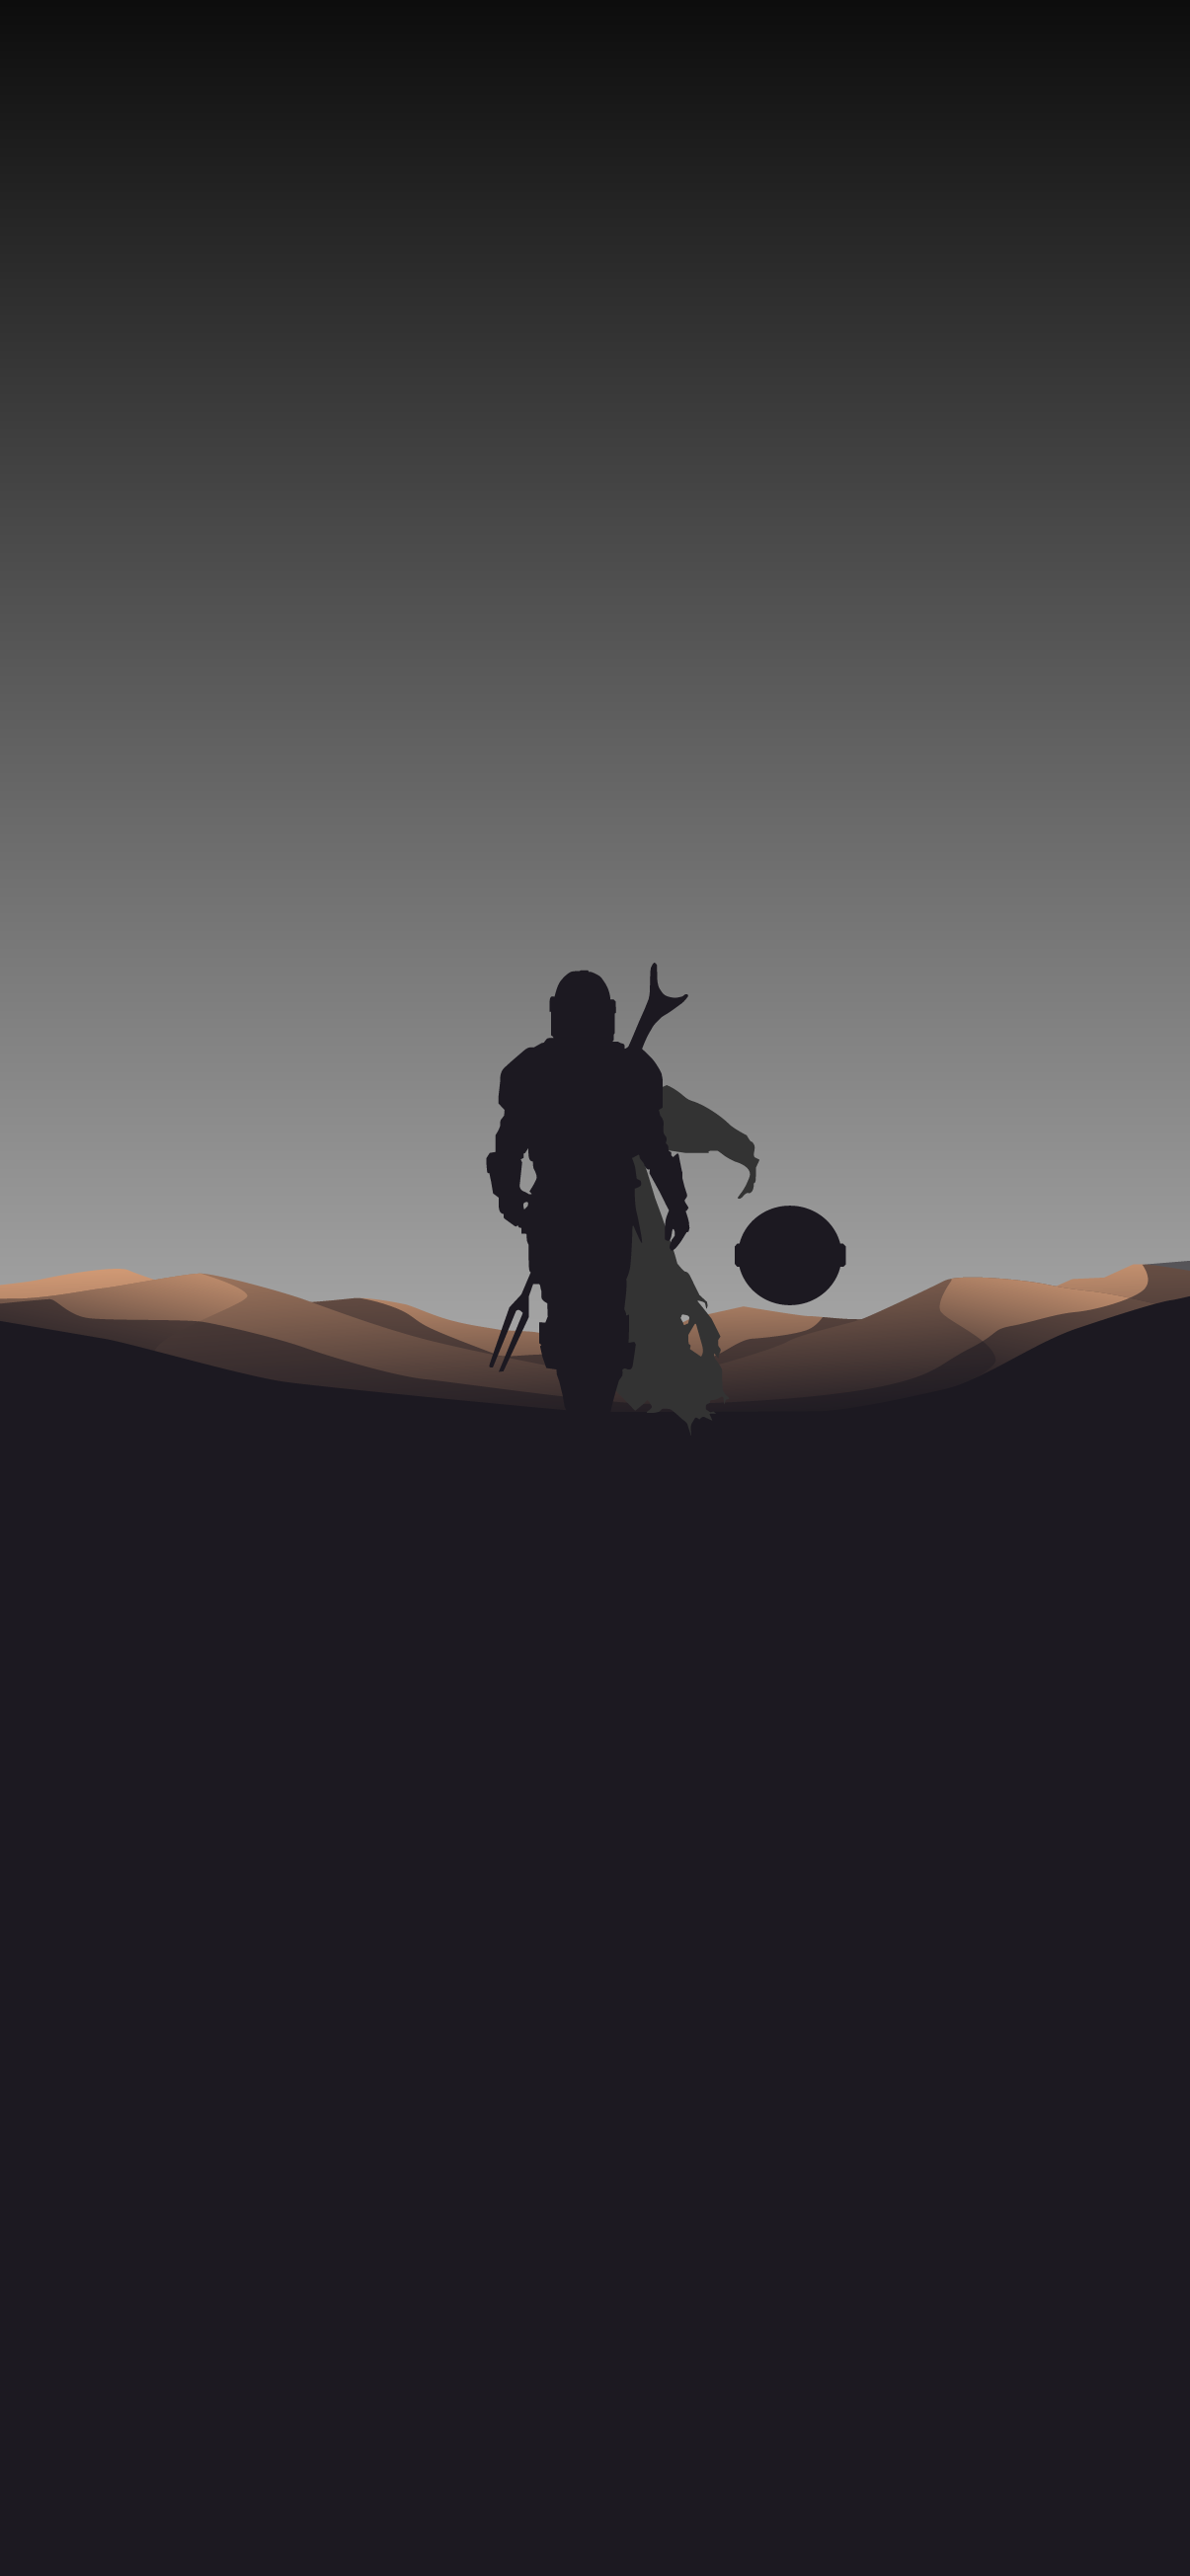 The Mandalorian Minimalist Wallpaper 4k Heroscreen Cool Wallpapers